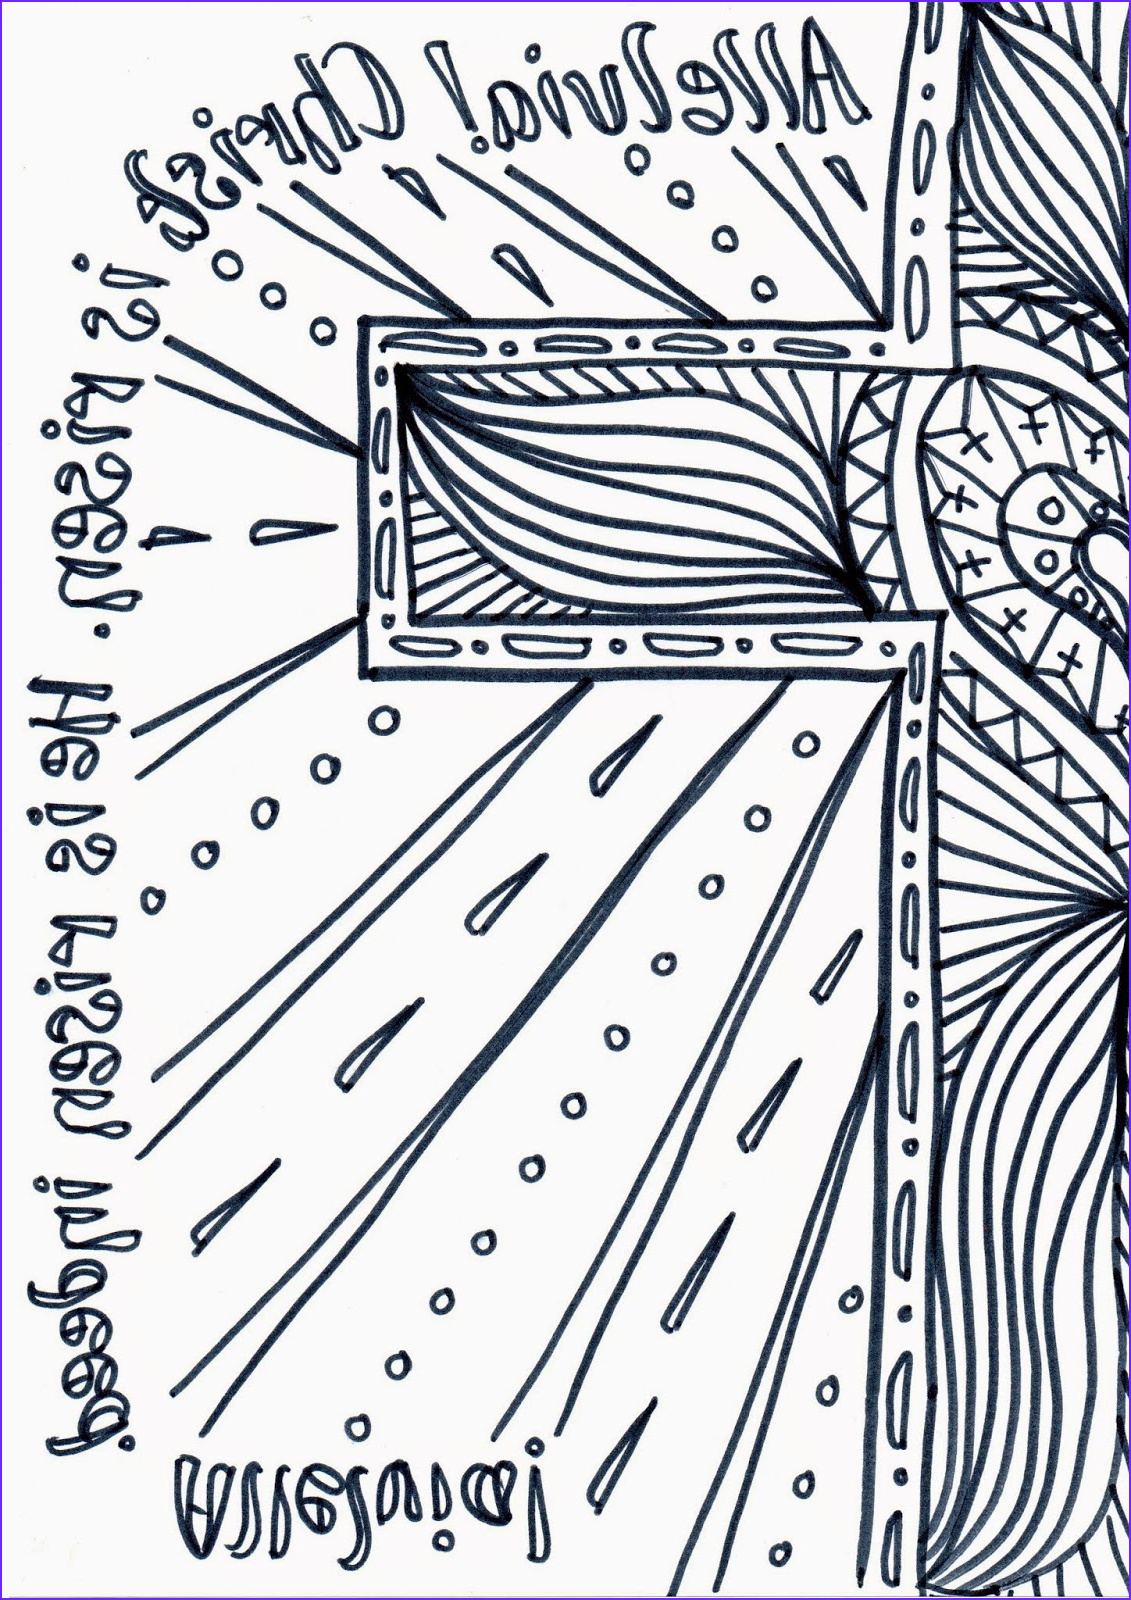 Childrens Coloring Pages New Image Flame Creative Children S Ministry Reflective Colouring